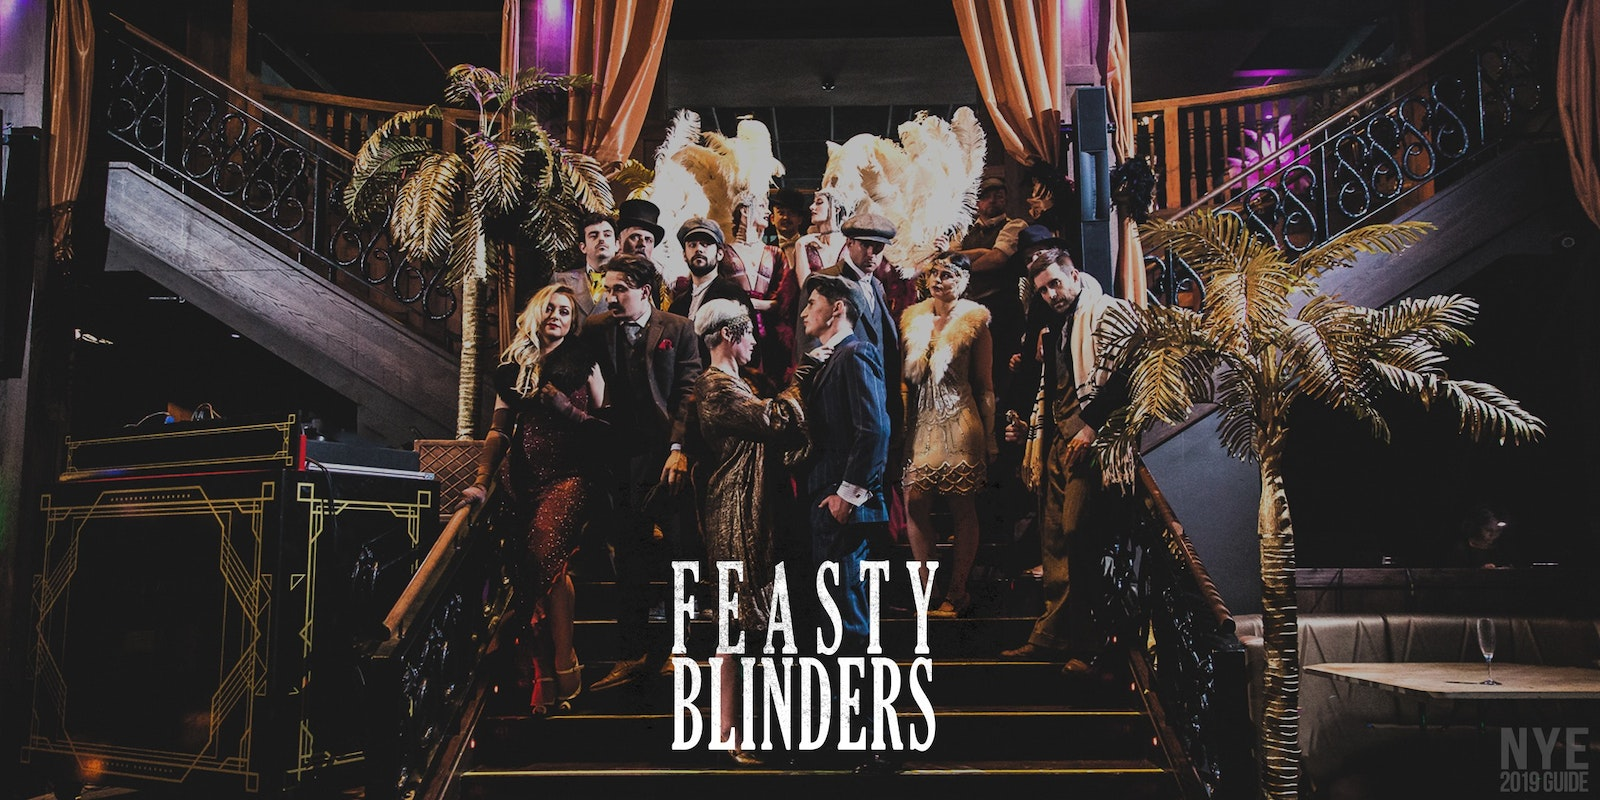 Feasty Blinders – The New Years Eve Ball | An Immersive Peaky Blinders Event